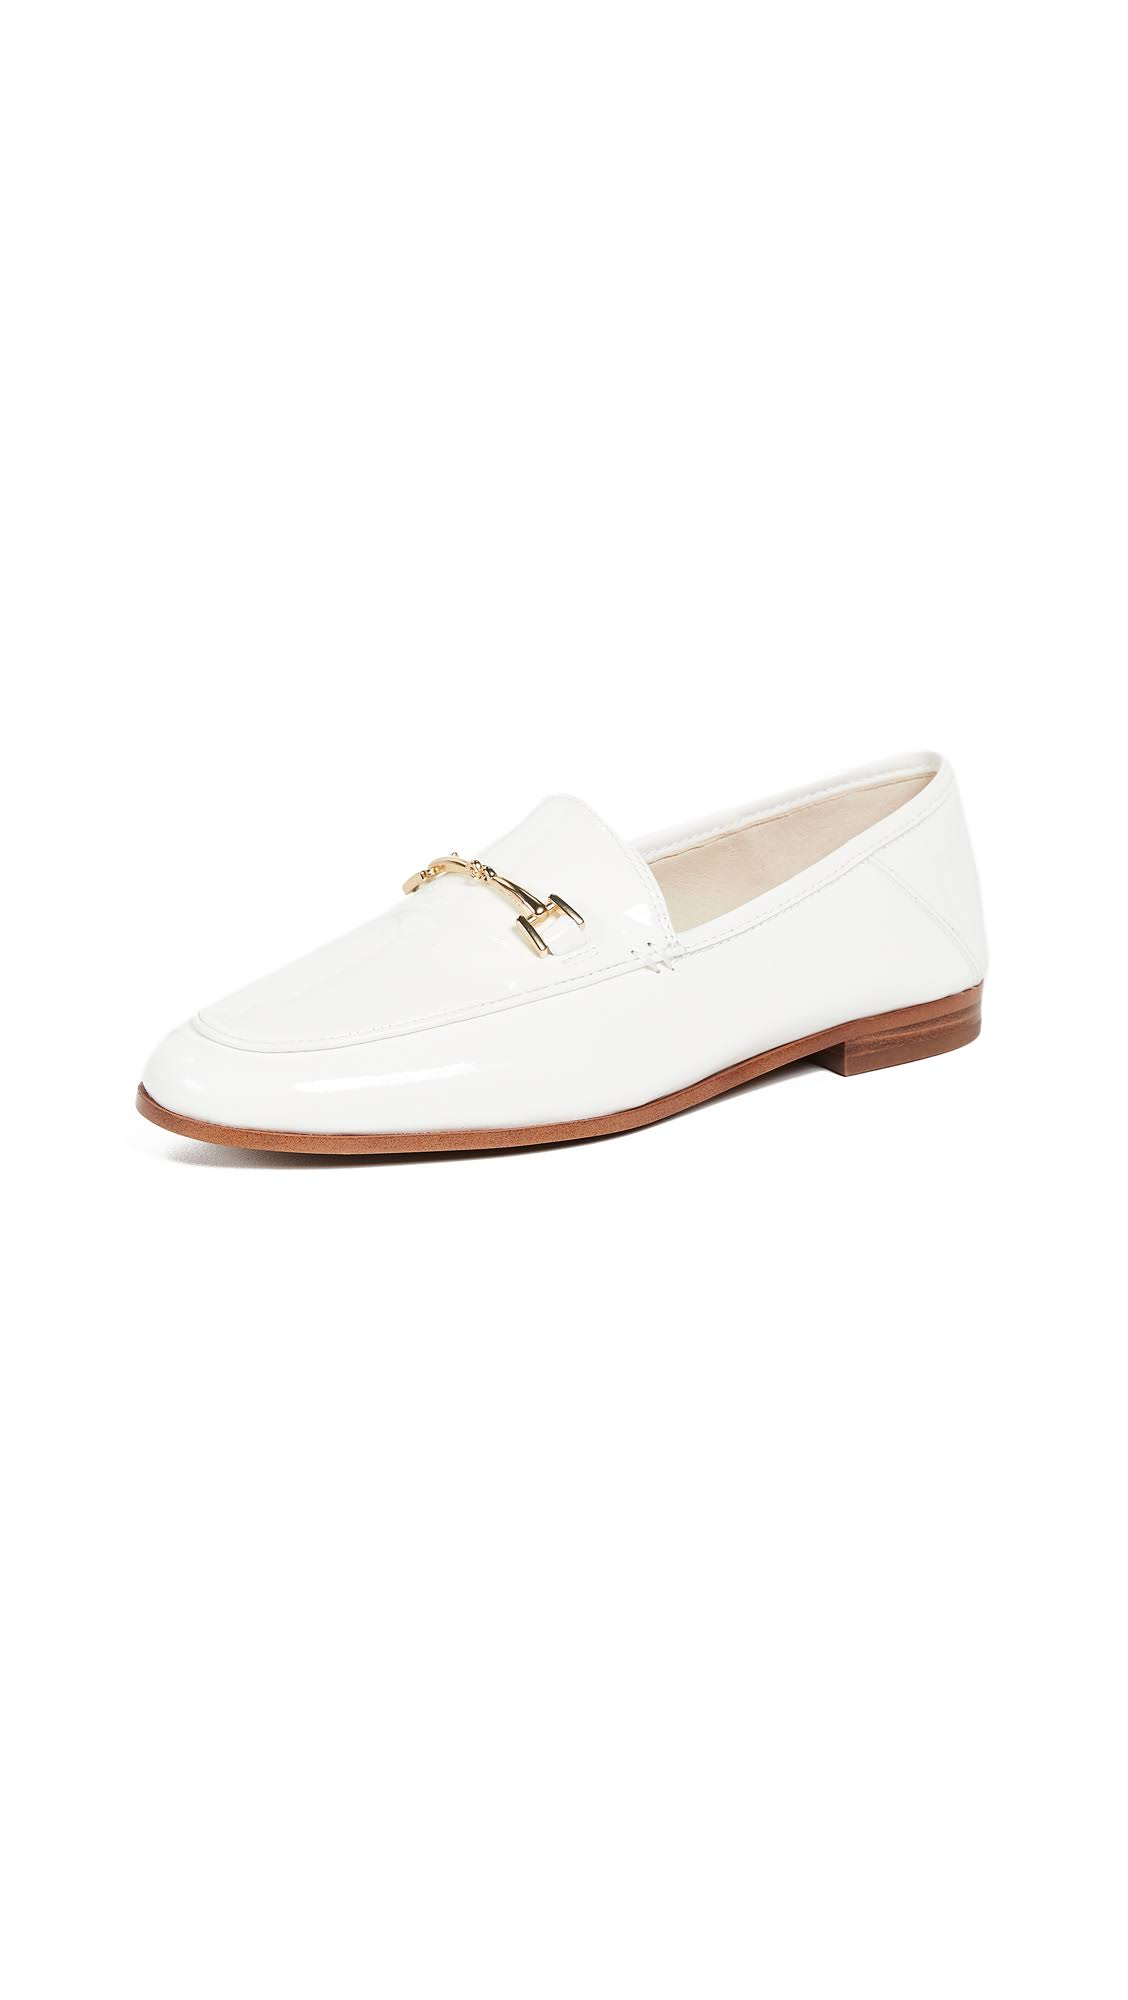 40½ Edelman 10 Bright 5 Loafers White Loraine Sam awqT40x